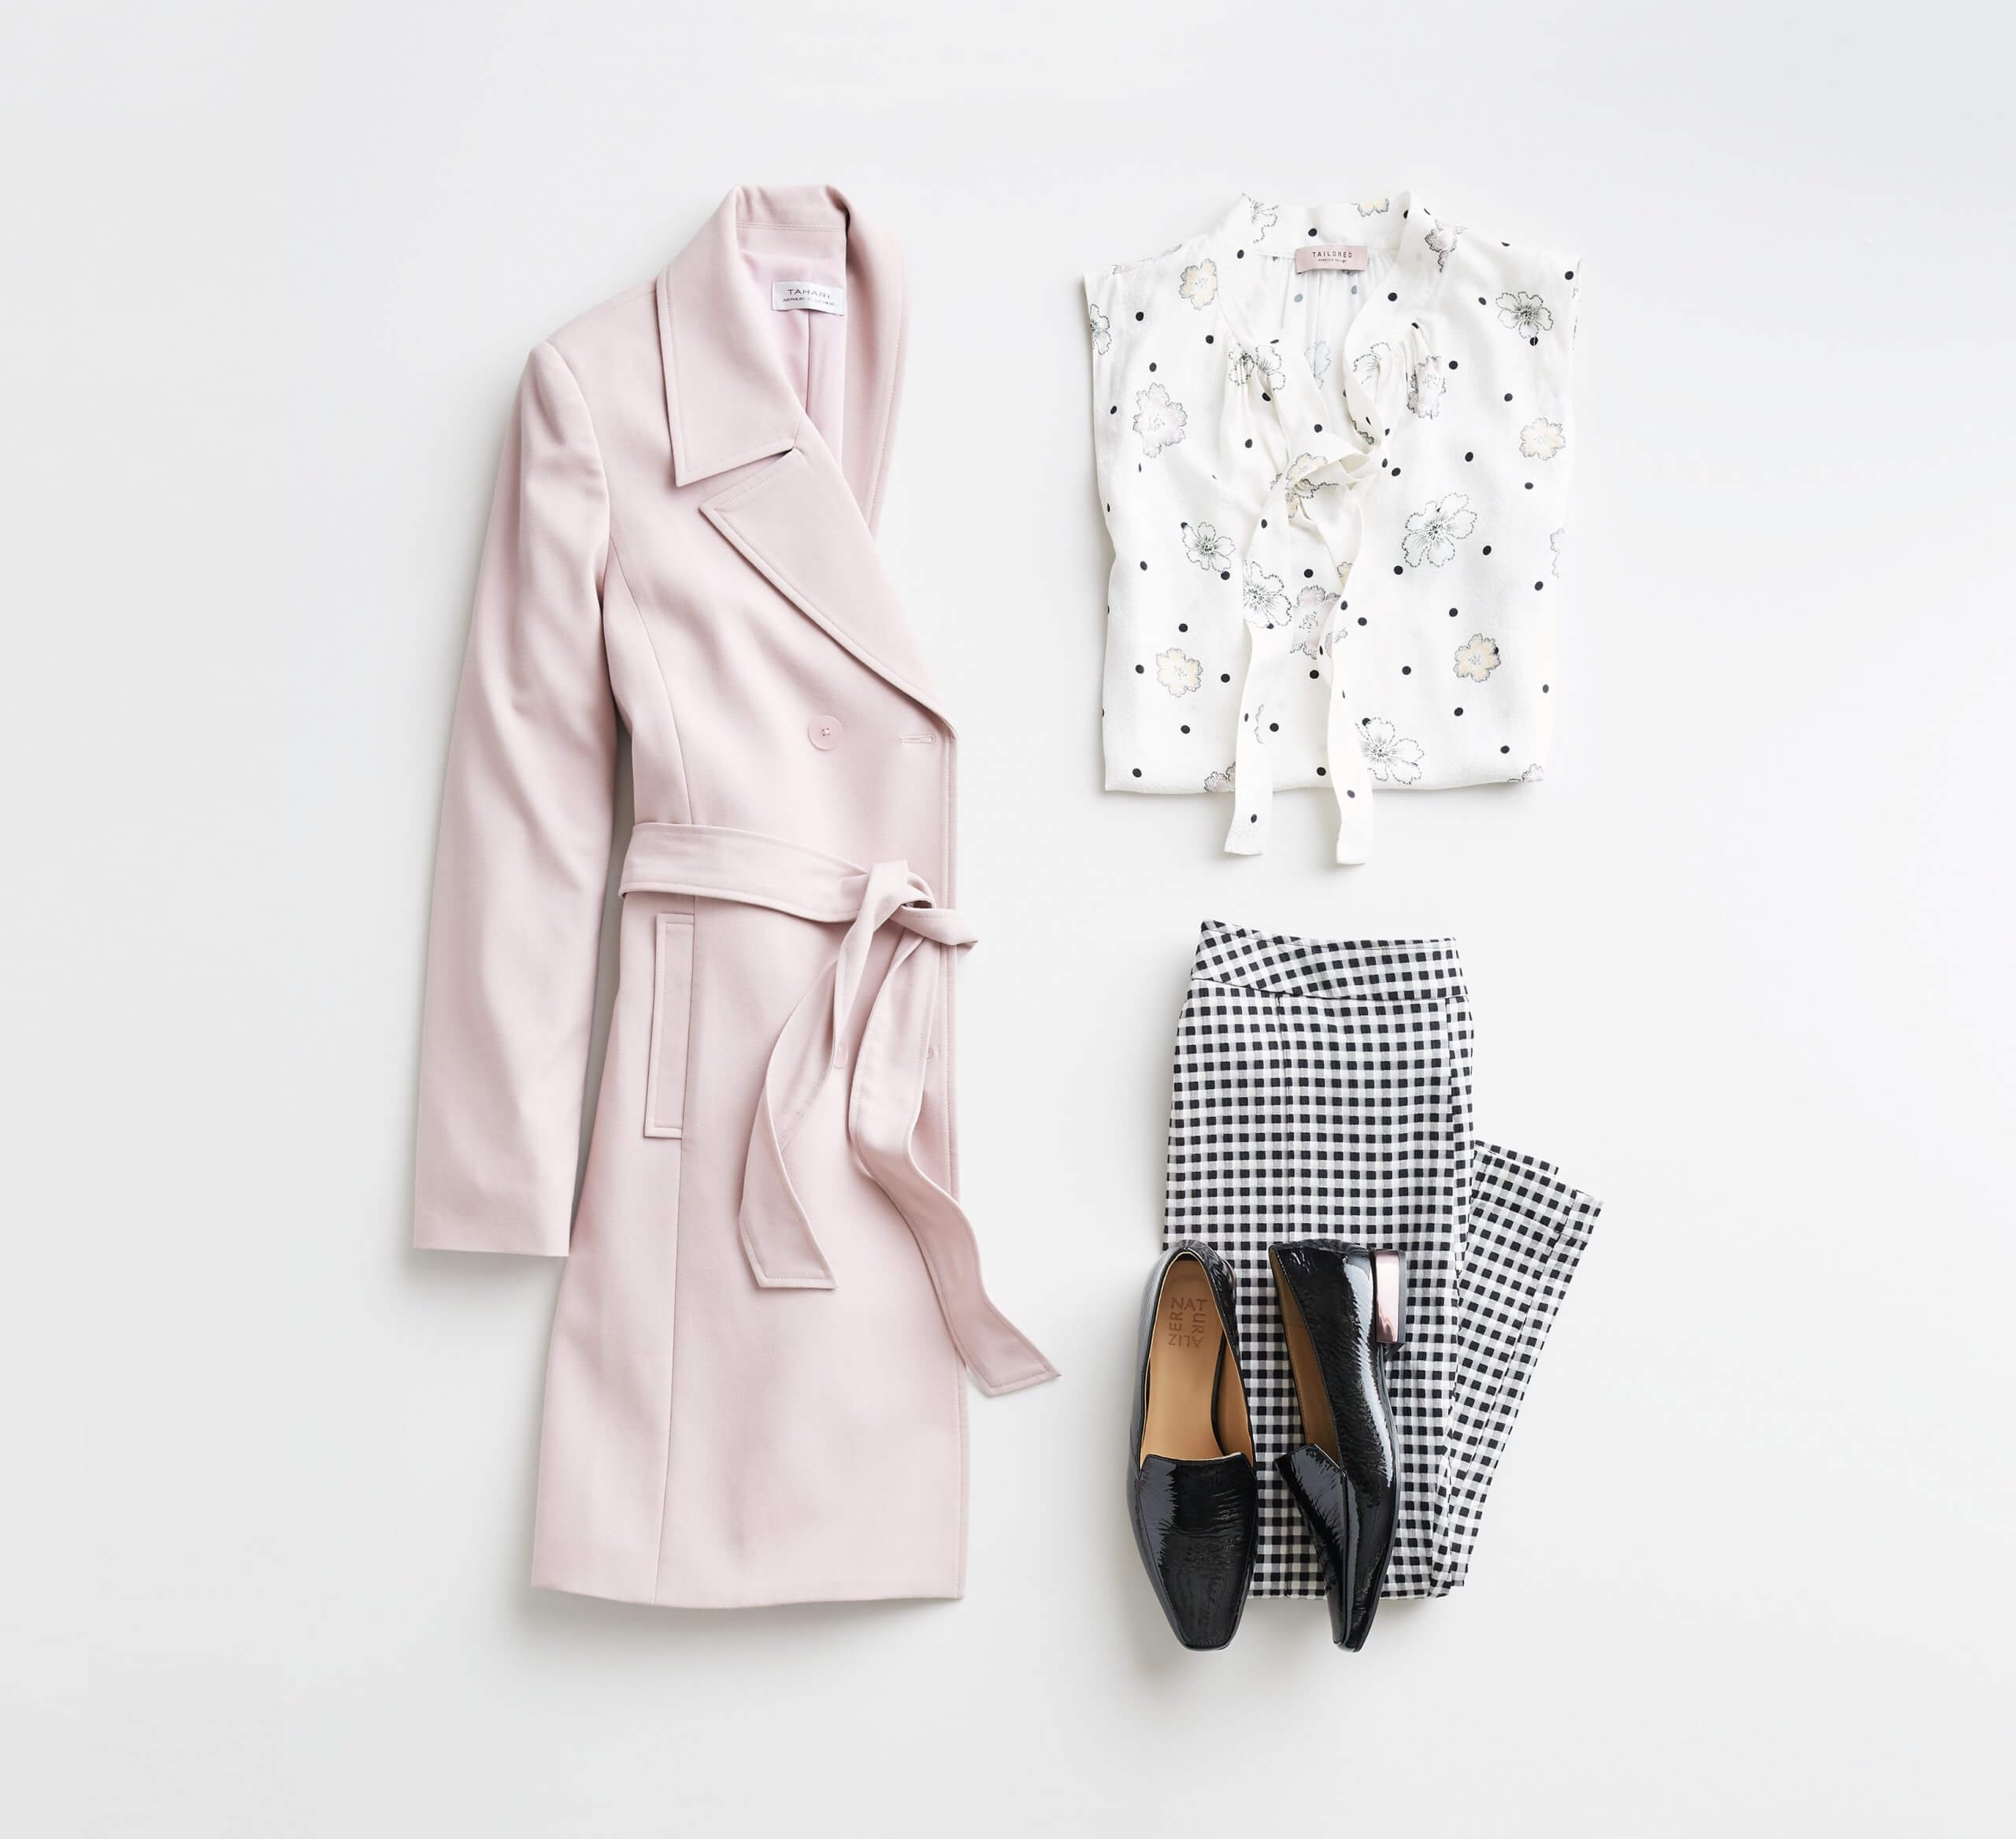 Stitch Fix Women's outfit laydown featuring pink trench jacket, white patterned tie-neck blouse, black and white checkered pants and black loafers.